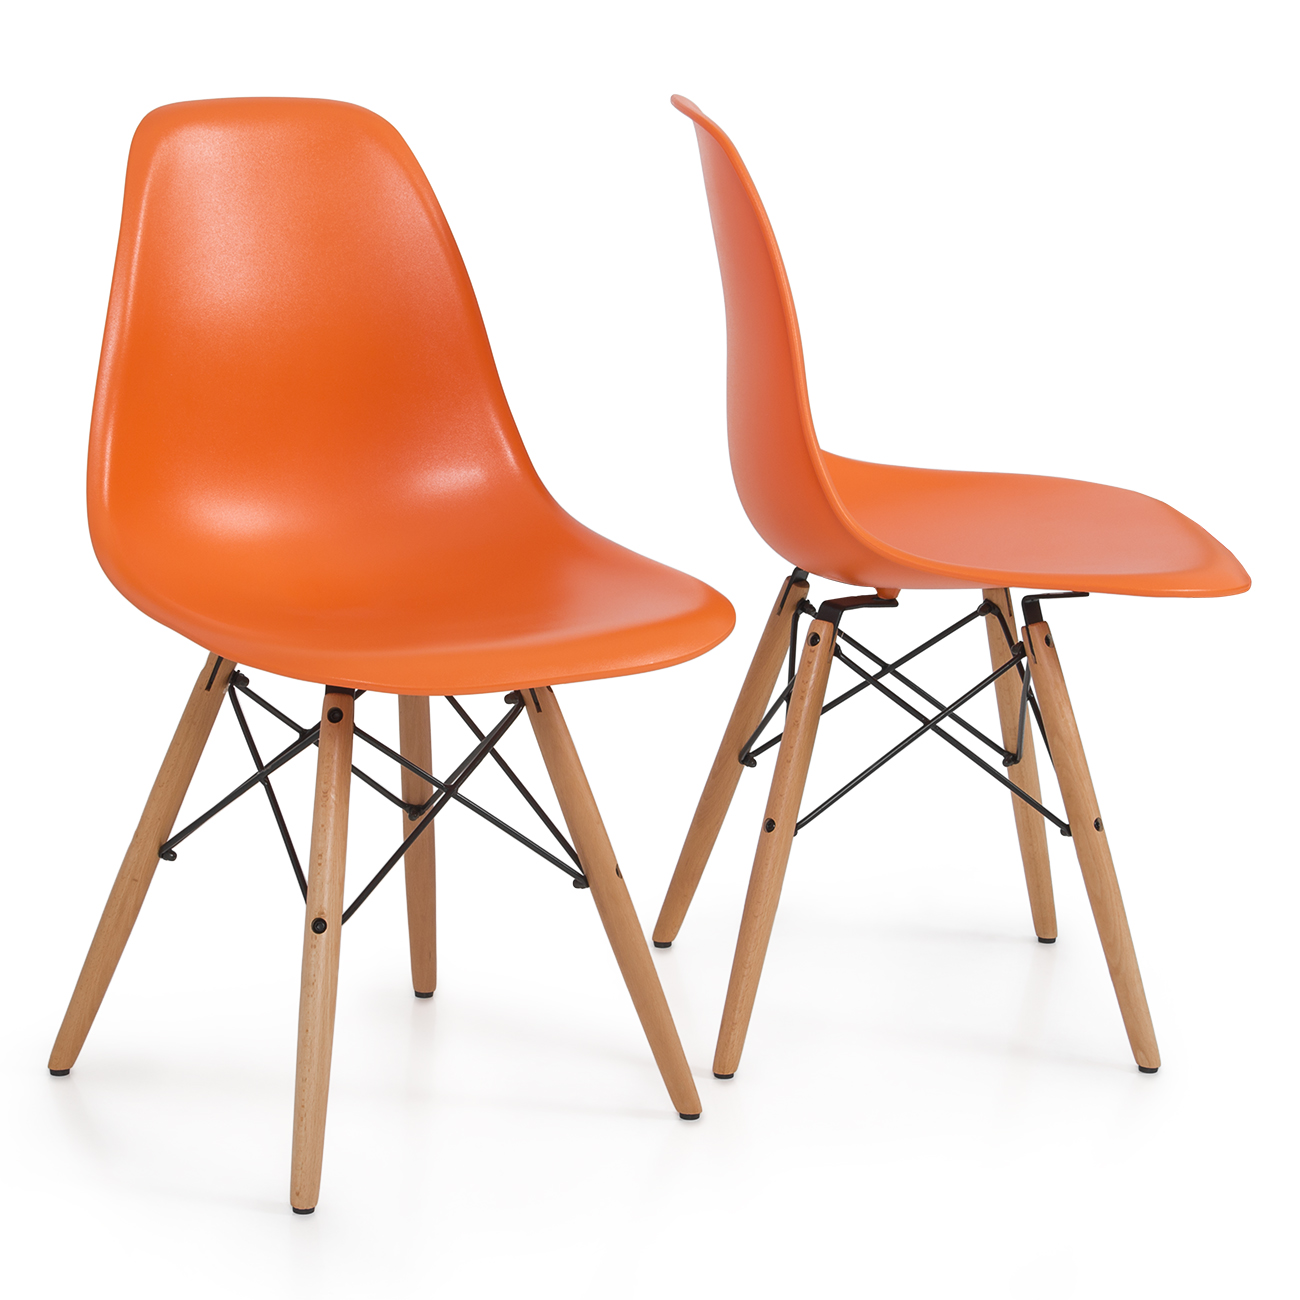 Details About Style DSW Wood Base Mid Century Modern Shell Dining Side  Chair, Set Of 2